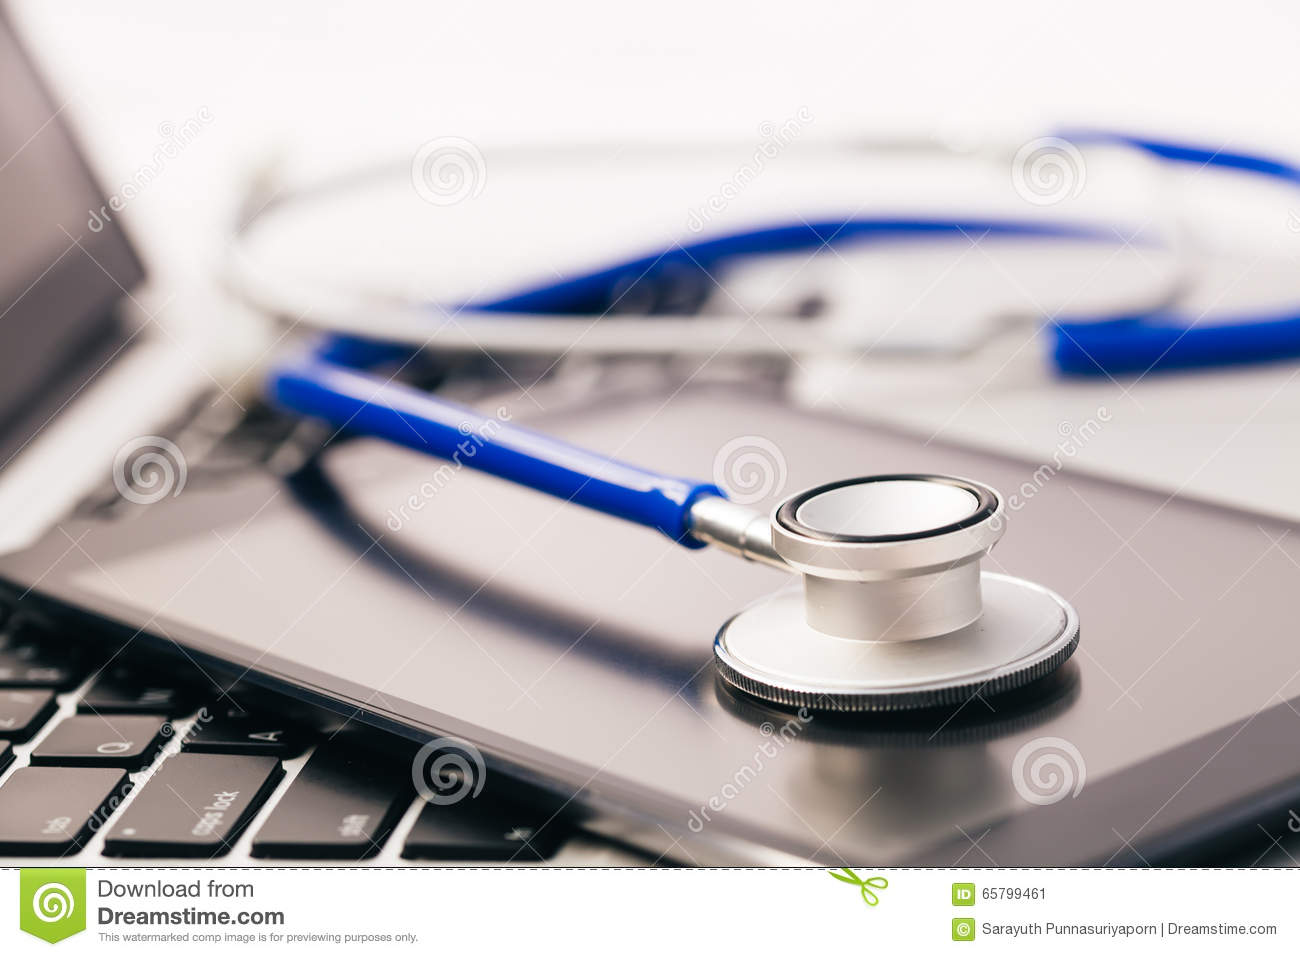 Tablet / Phablet being diagnosed by stethoscope - phone repair a